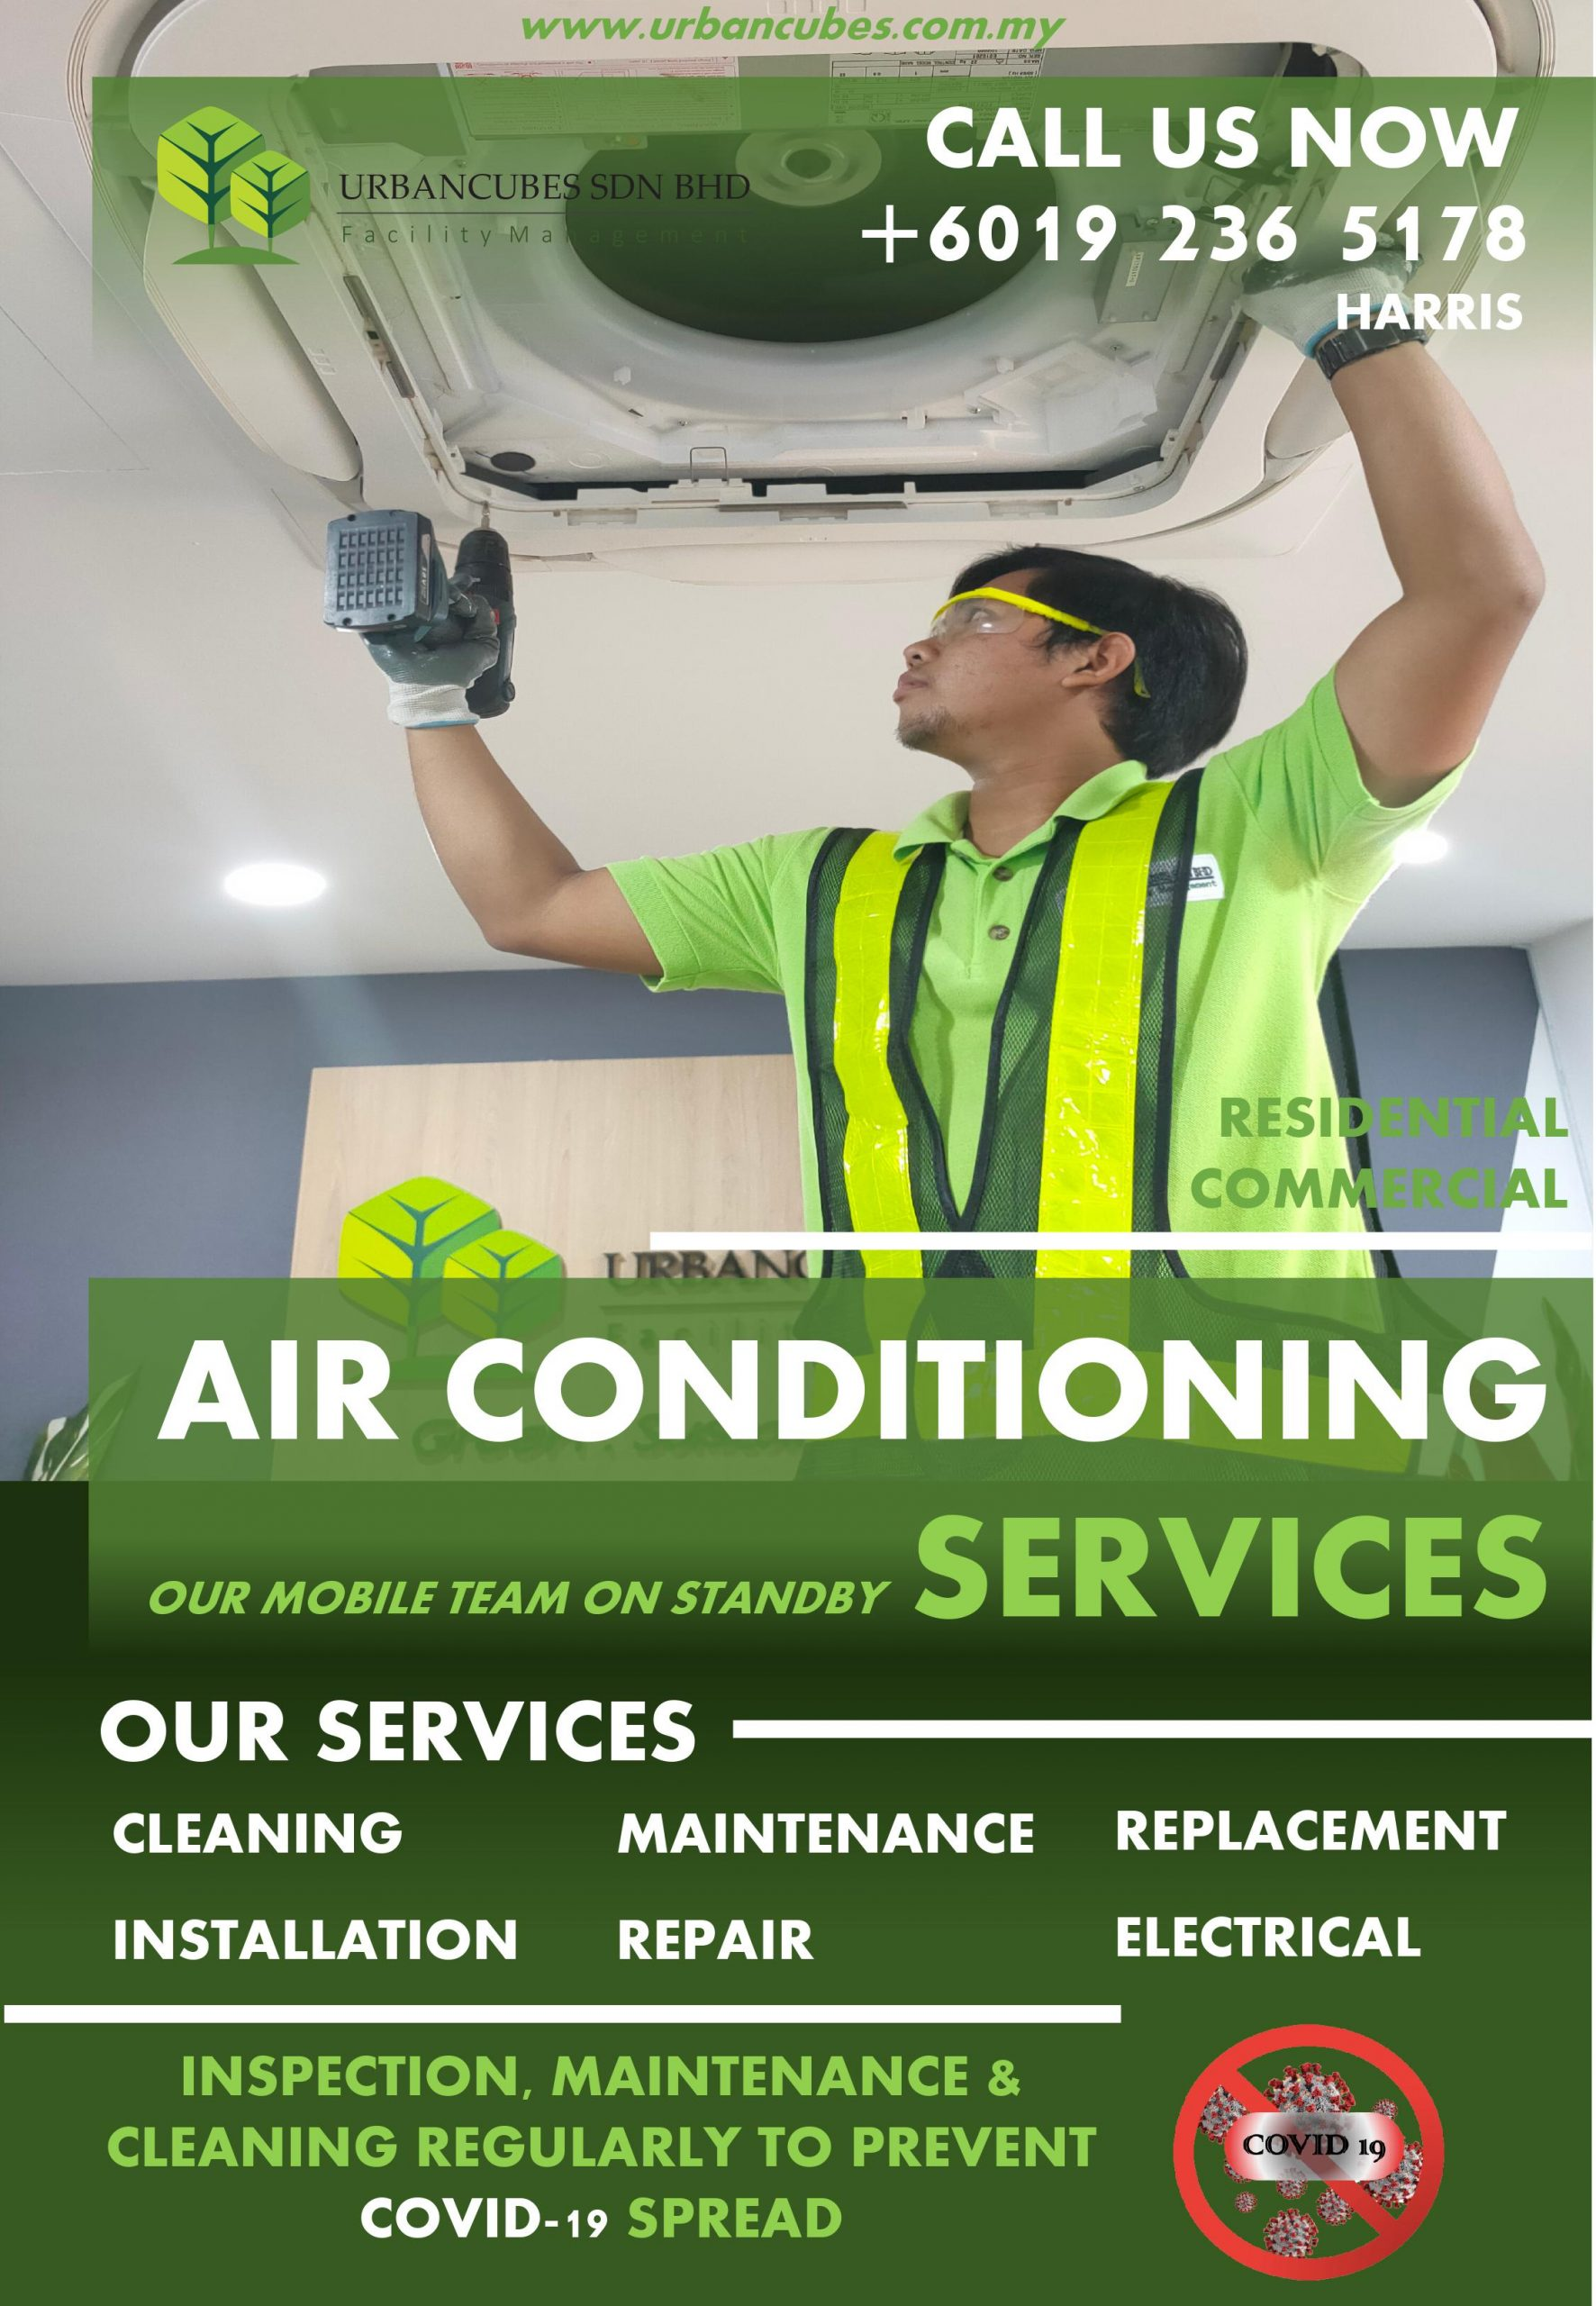 Urbancubes.com.my-Air Conditioning Services